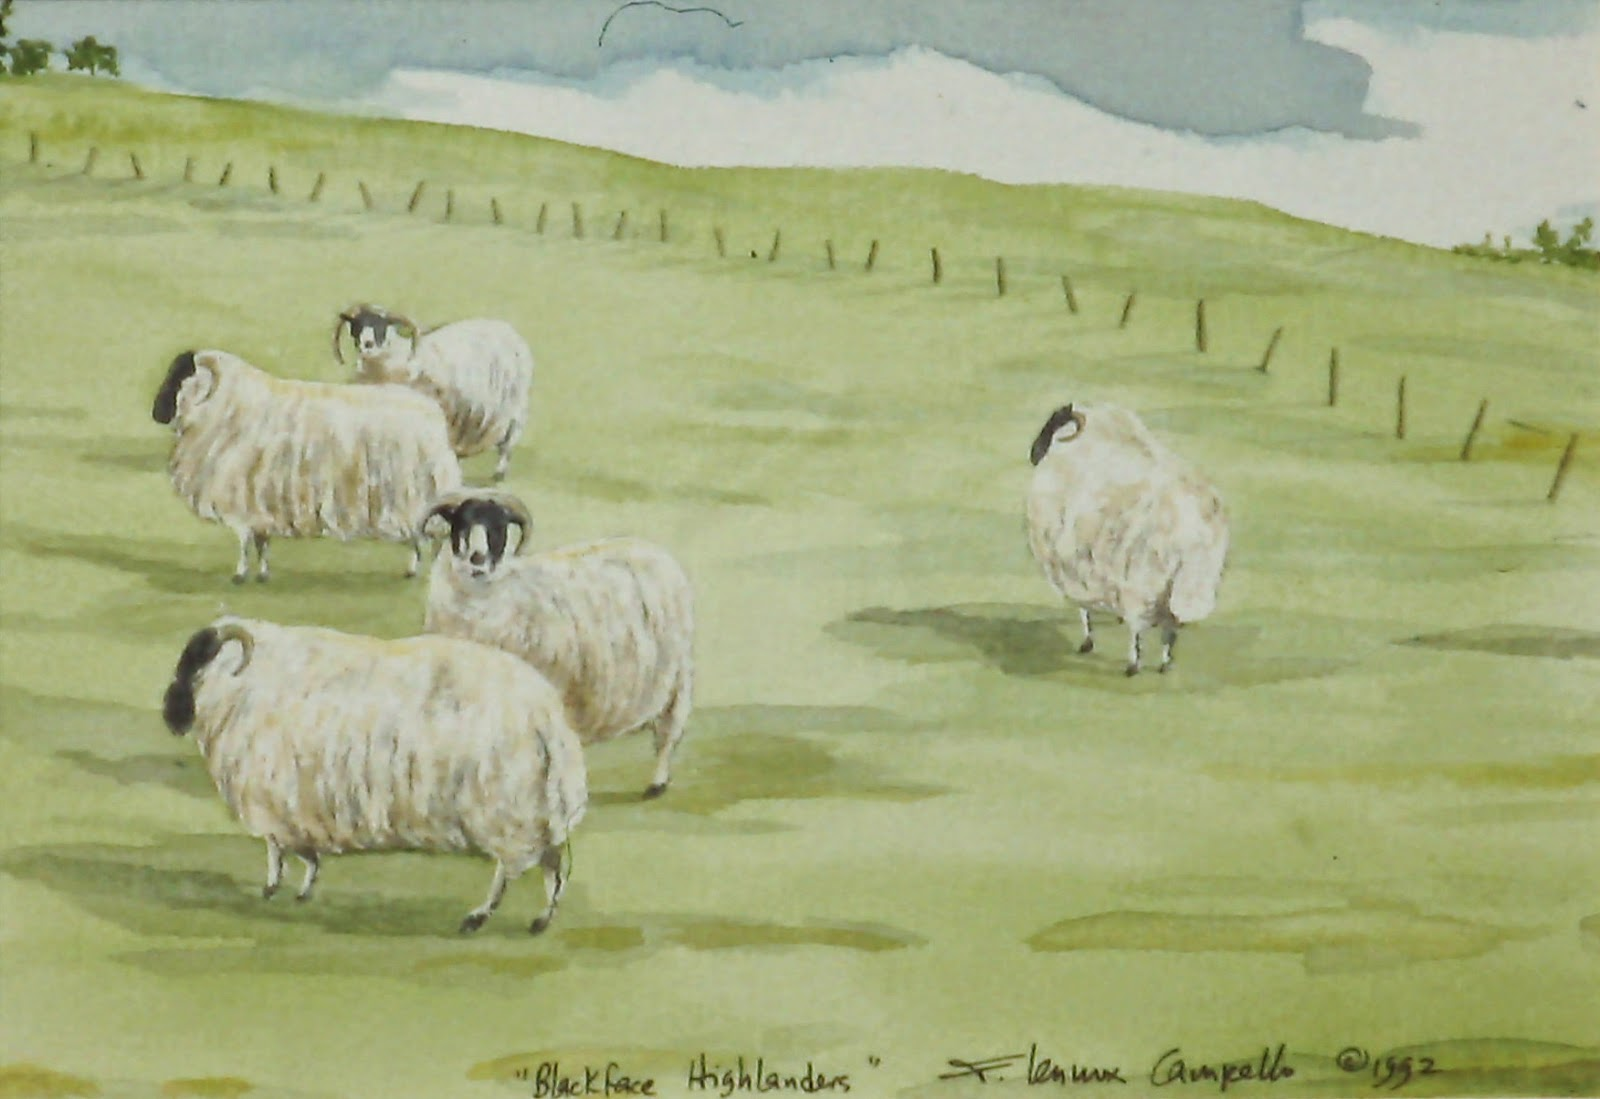 Blackface Highlanders (Near Edzell, Angus, Scotland)  8x10 inches. Watercolor on paper, c. 1992  In a private collection in the U.S. By Lenny Campello